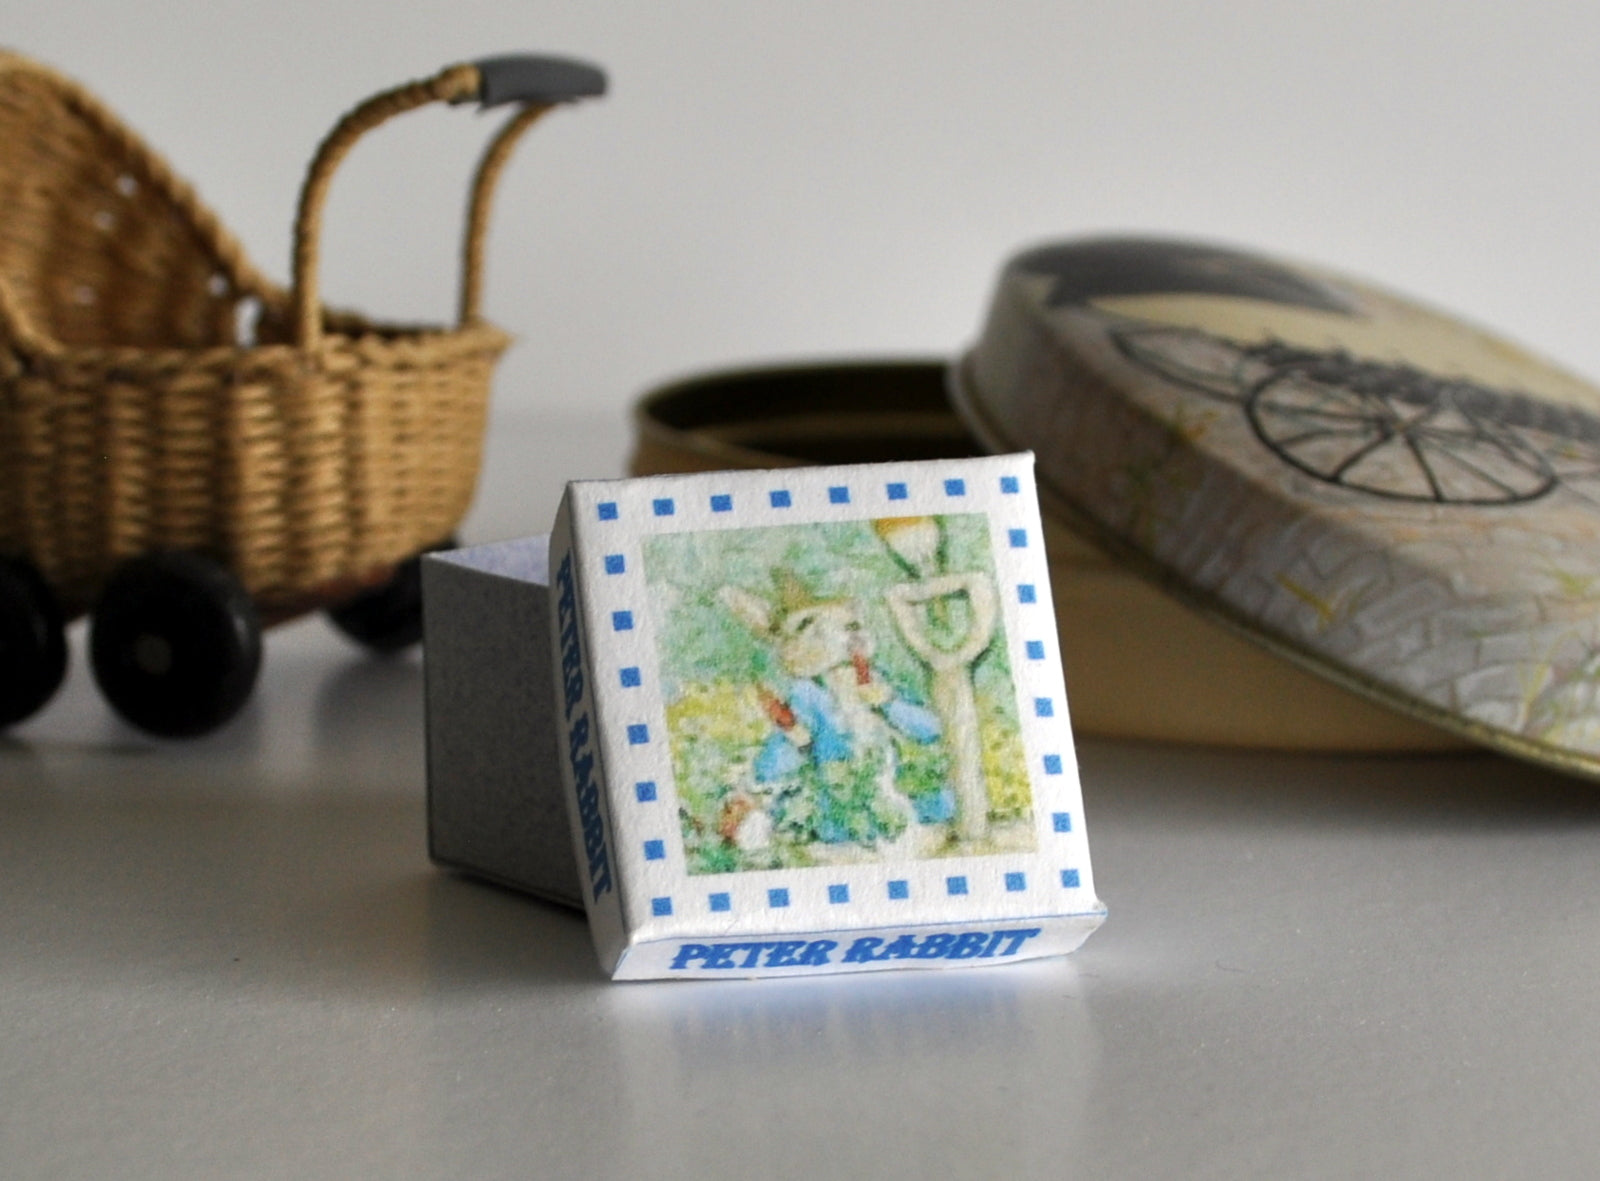 ESTATE TREASURE: Peter Rabbit Gift Box by Lorraine Scuderi